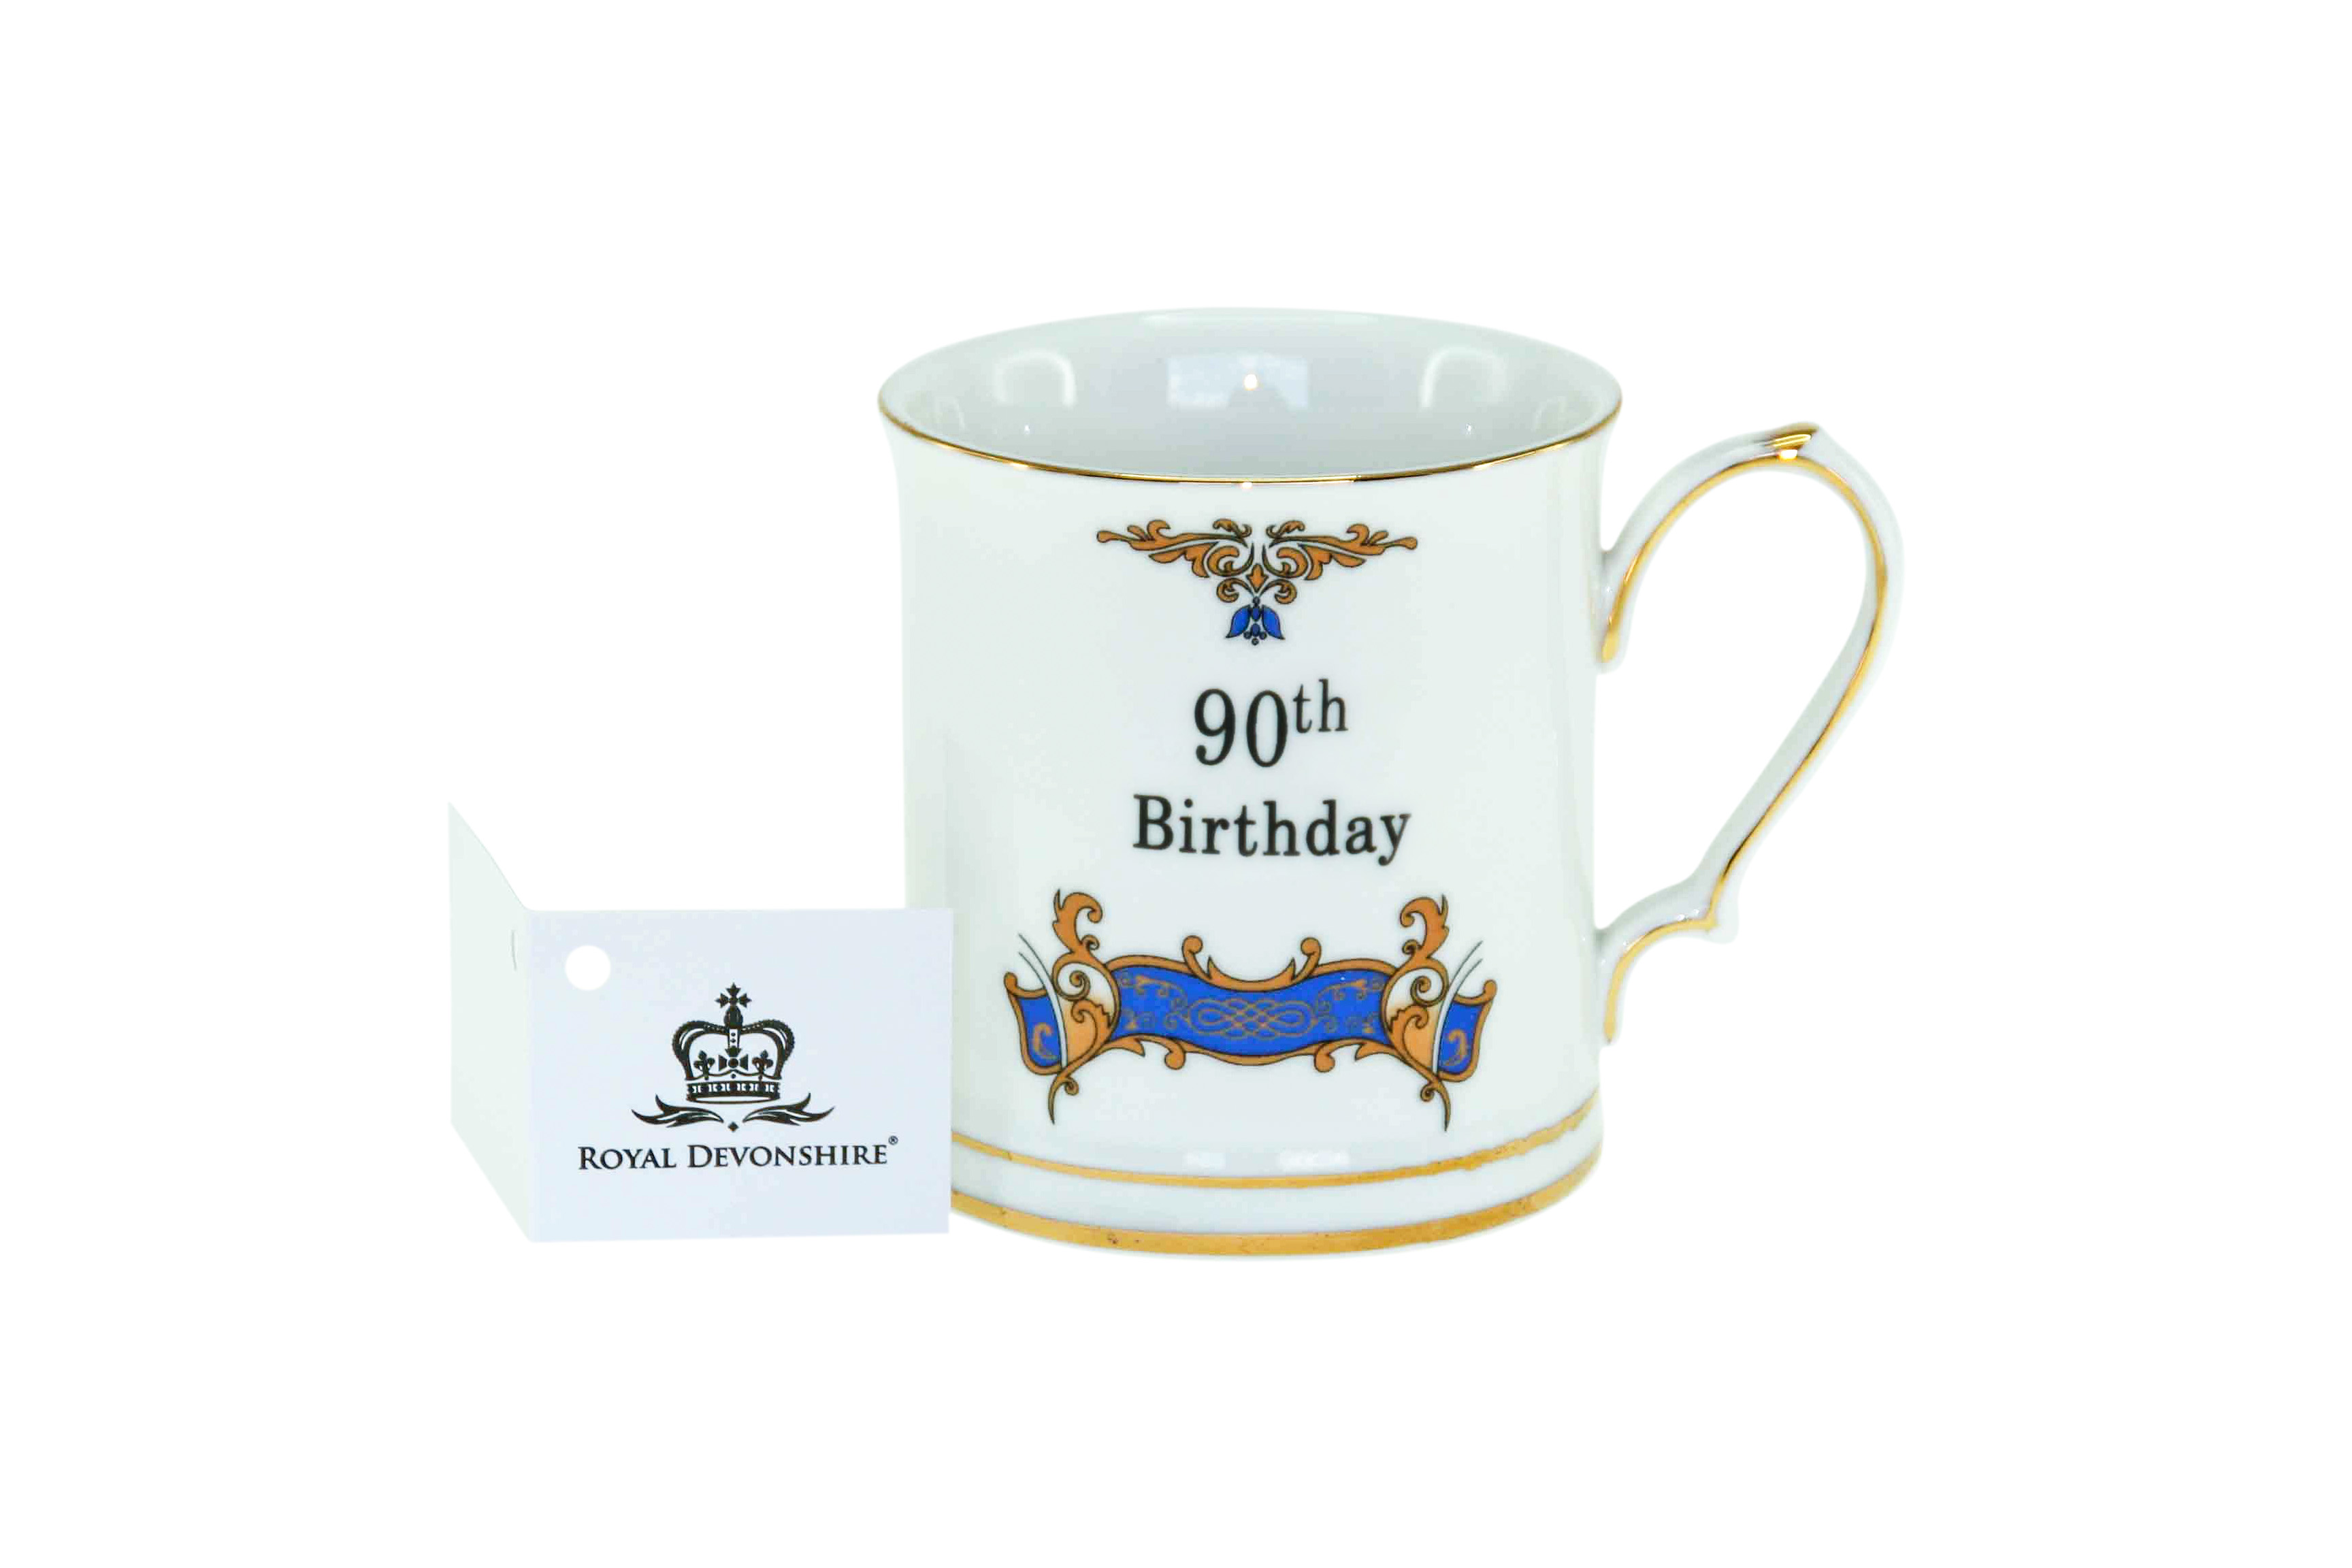 90th Birthday Tankard